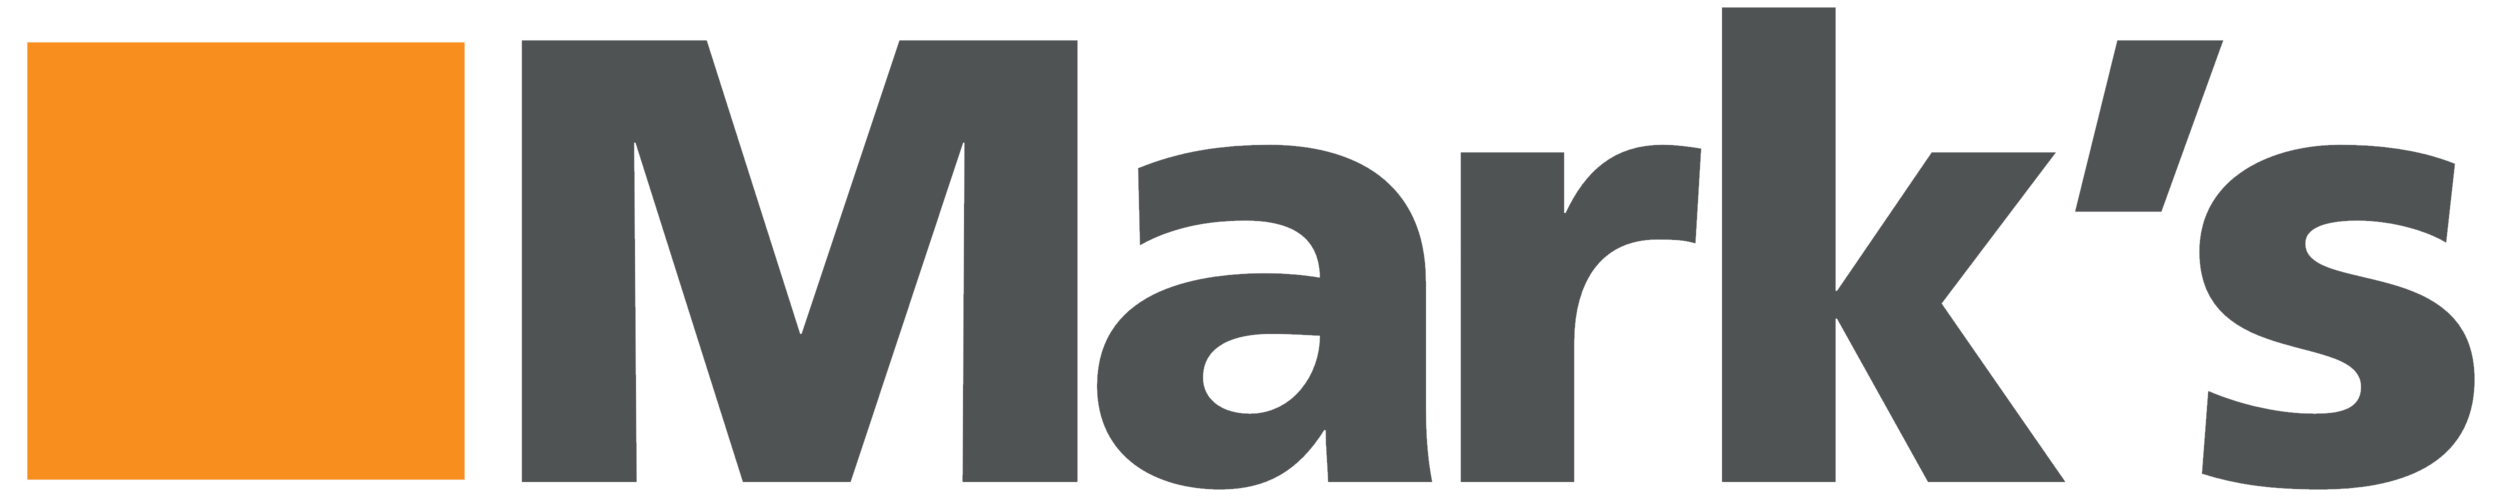 Mark_s_logo.png